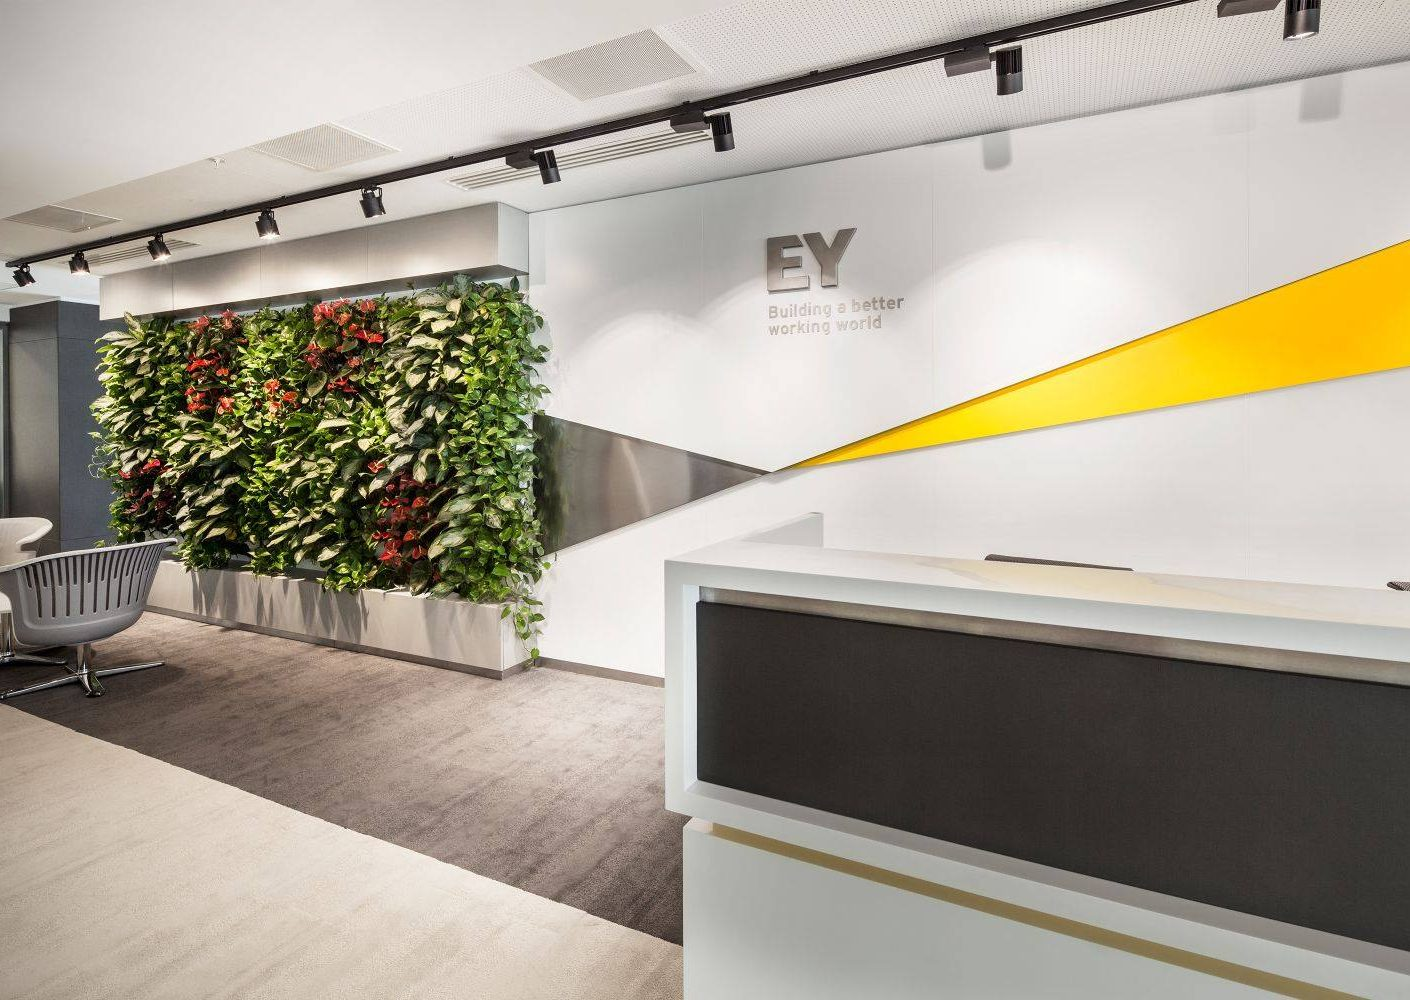 Ernst-Young-Romania-ama-design_hcd_01